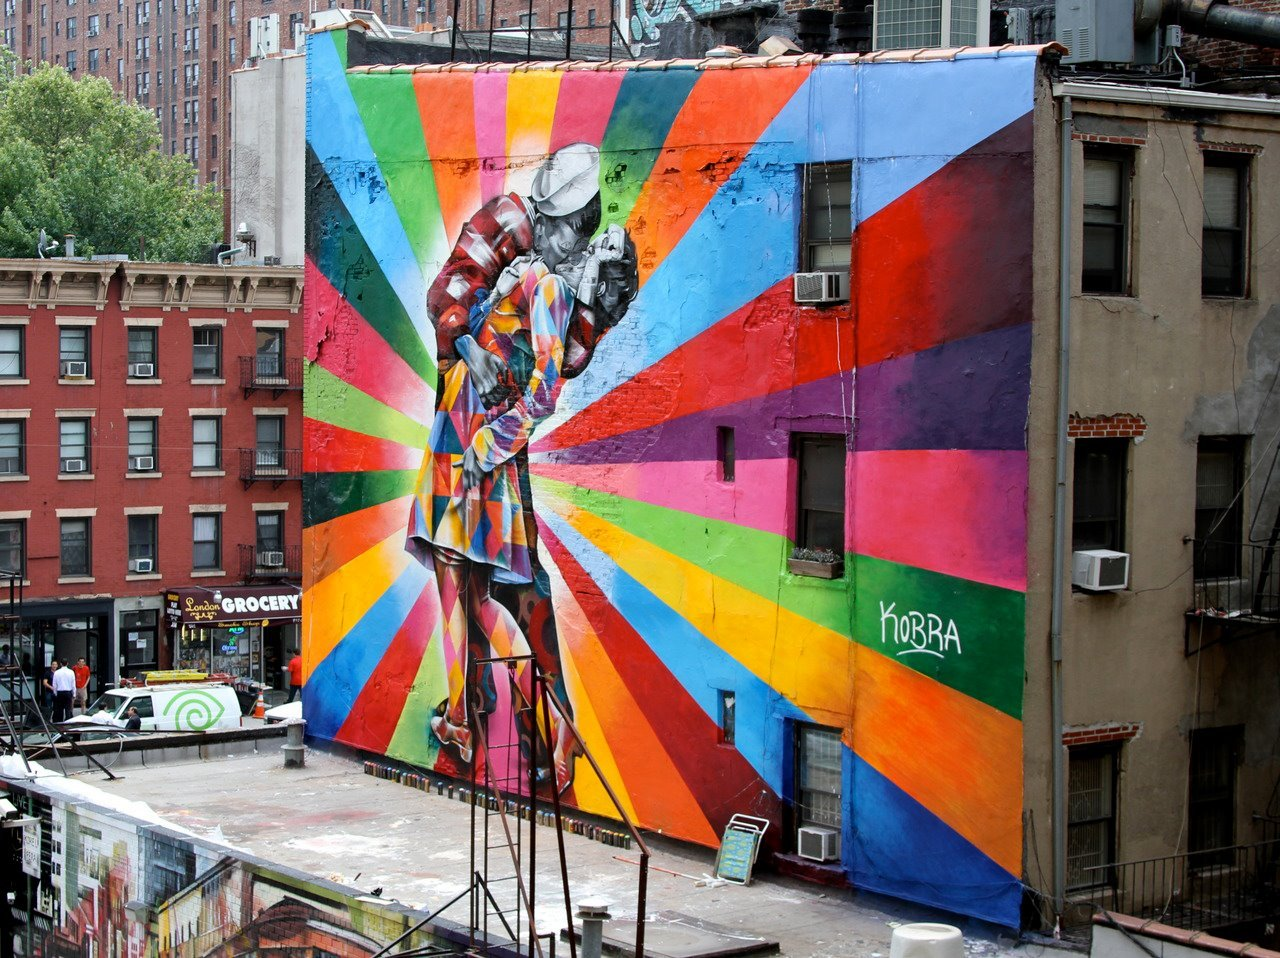 Mural by Eduardo Kobra in NYC